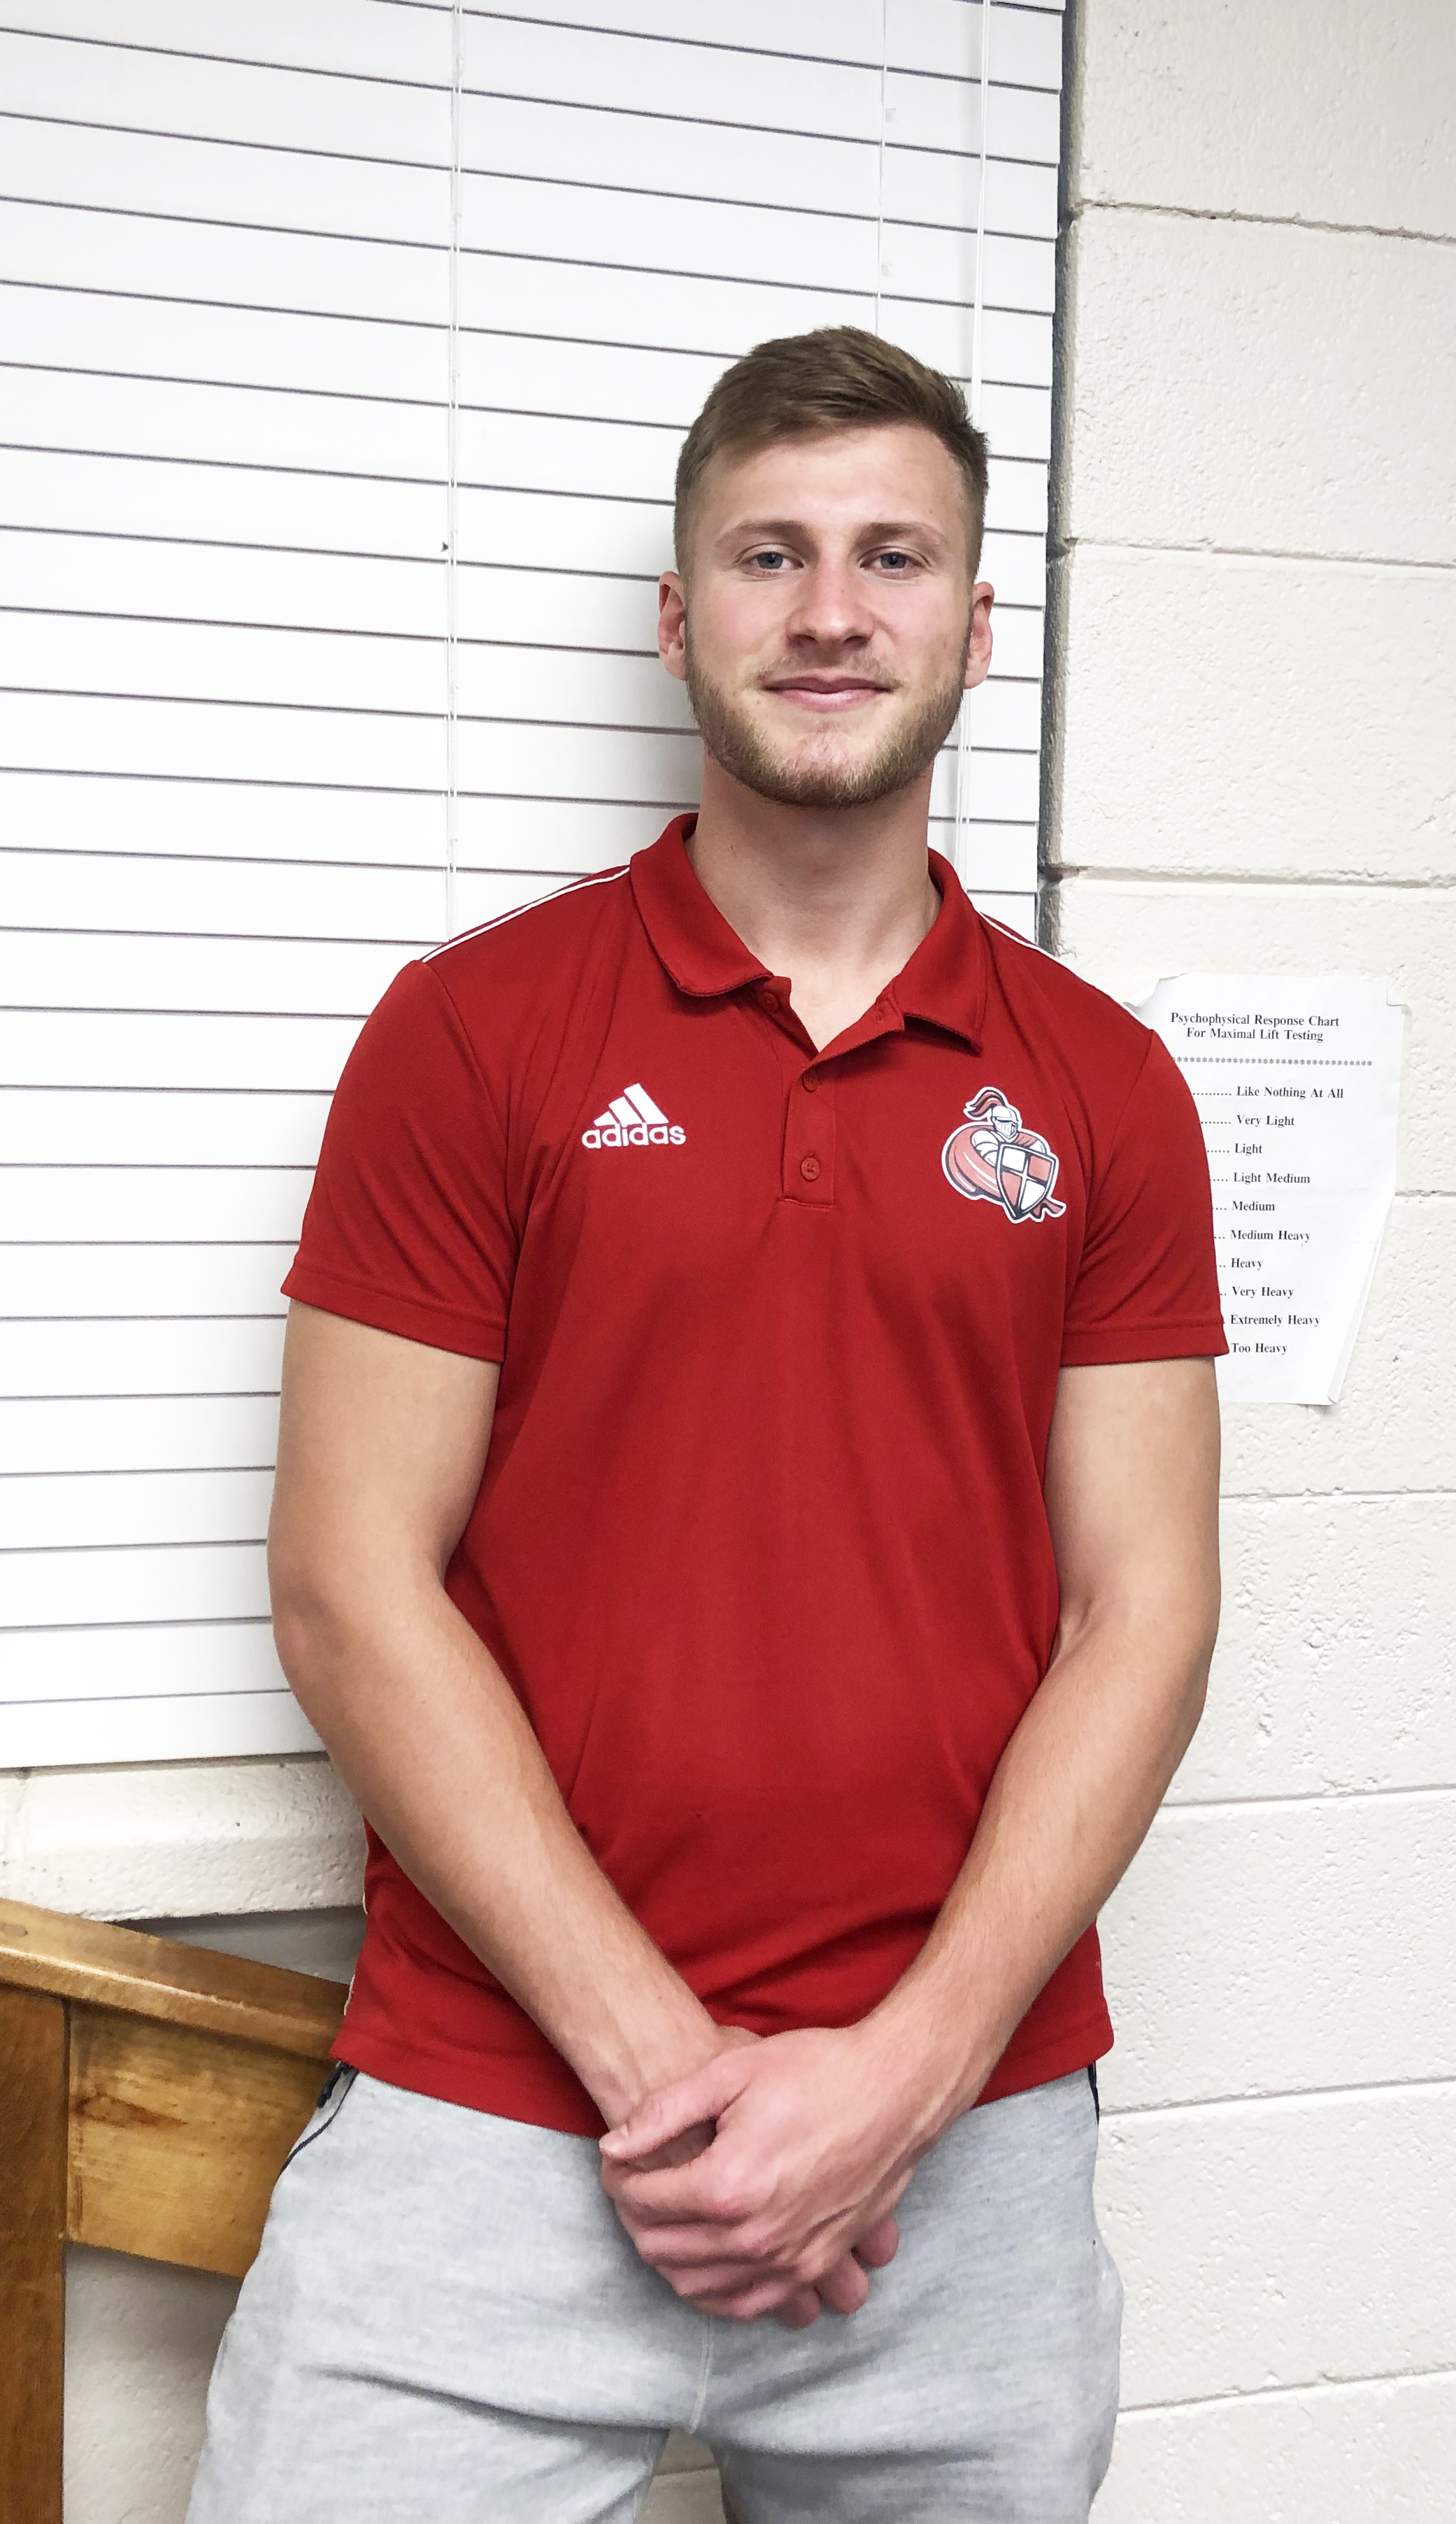 Ben Whalley is Athlete of the Month with #EncoreRehab at William Carey University